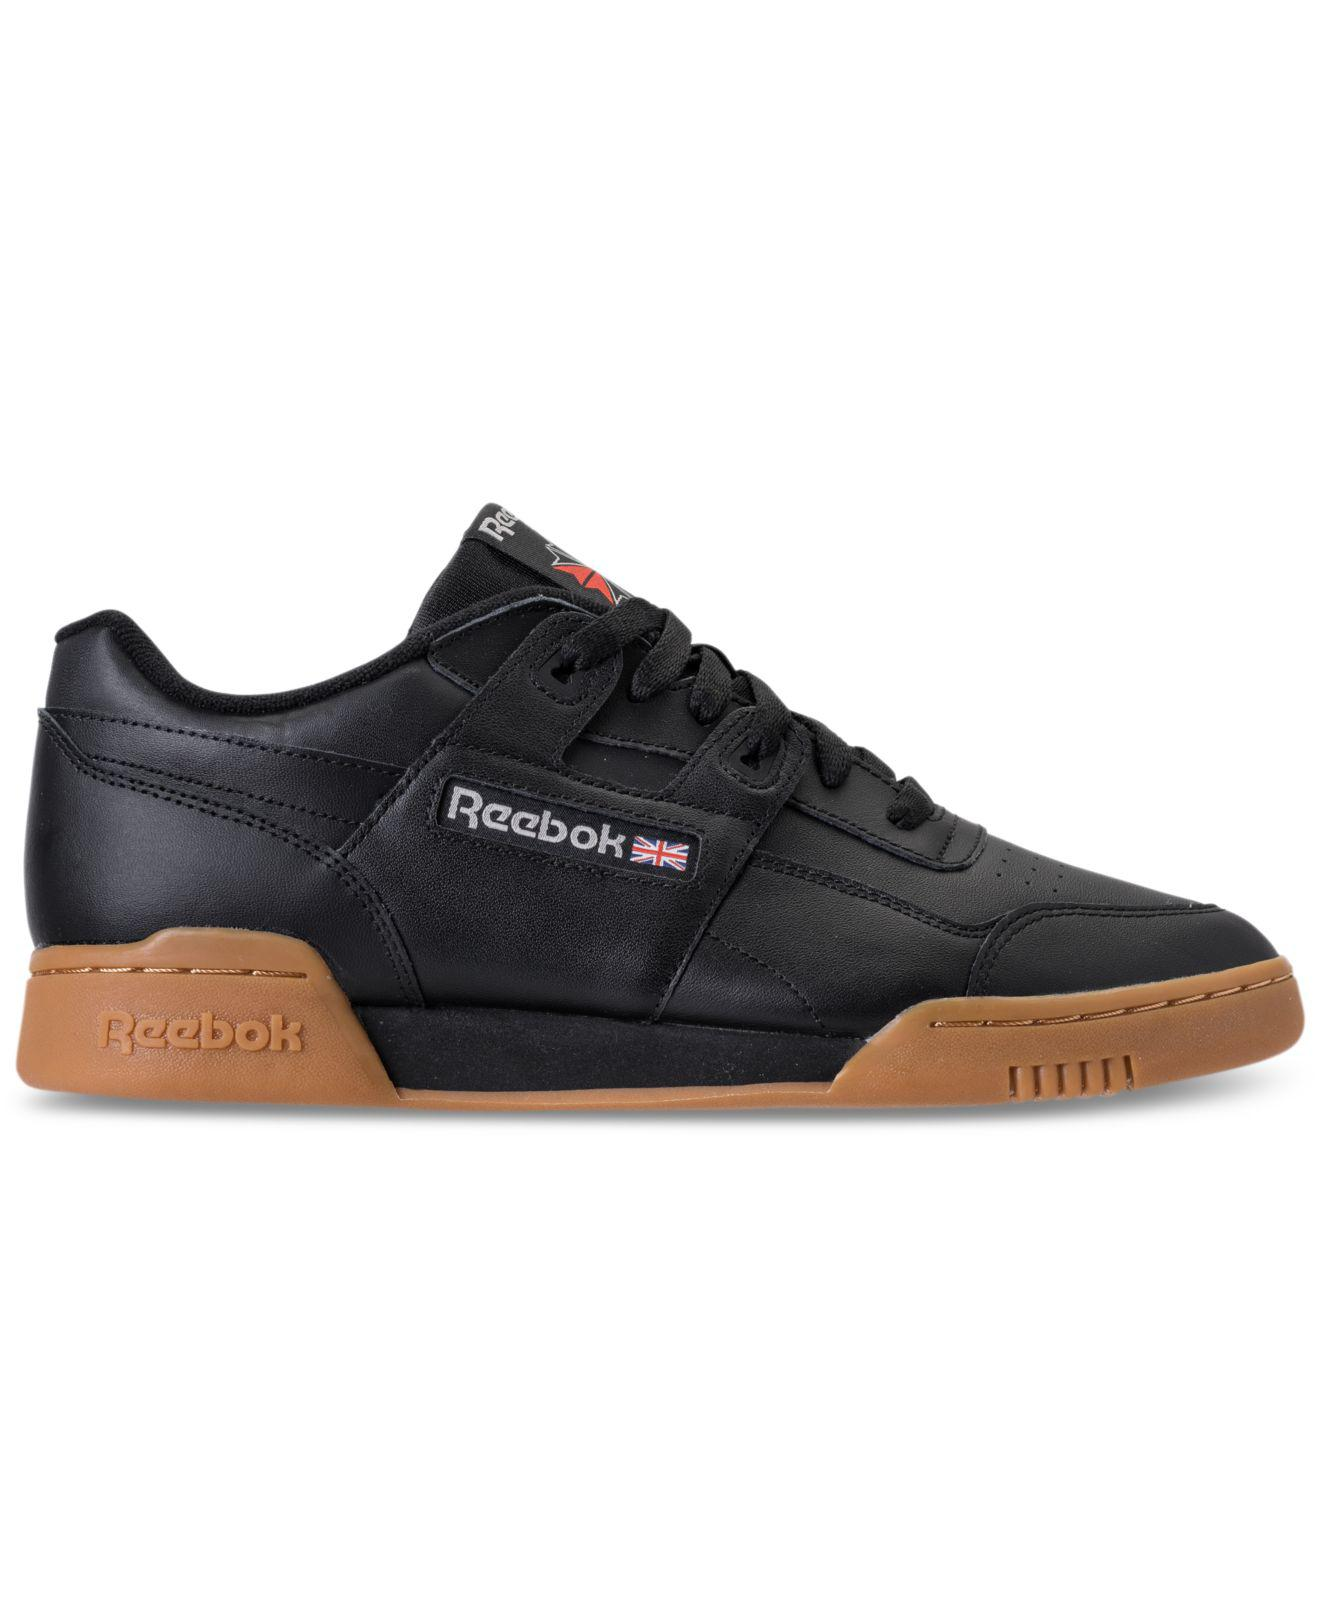 Lyst - Reebok Men s Workout Plus Leather Low-top Sneakers in Black for Men  - Save 25.0% ac37eebbc